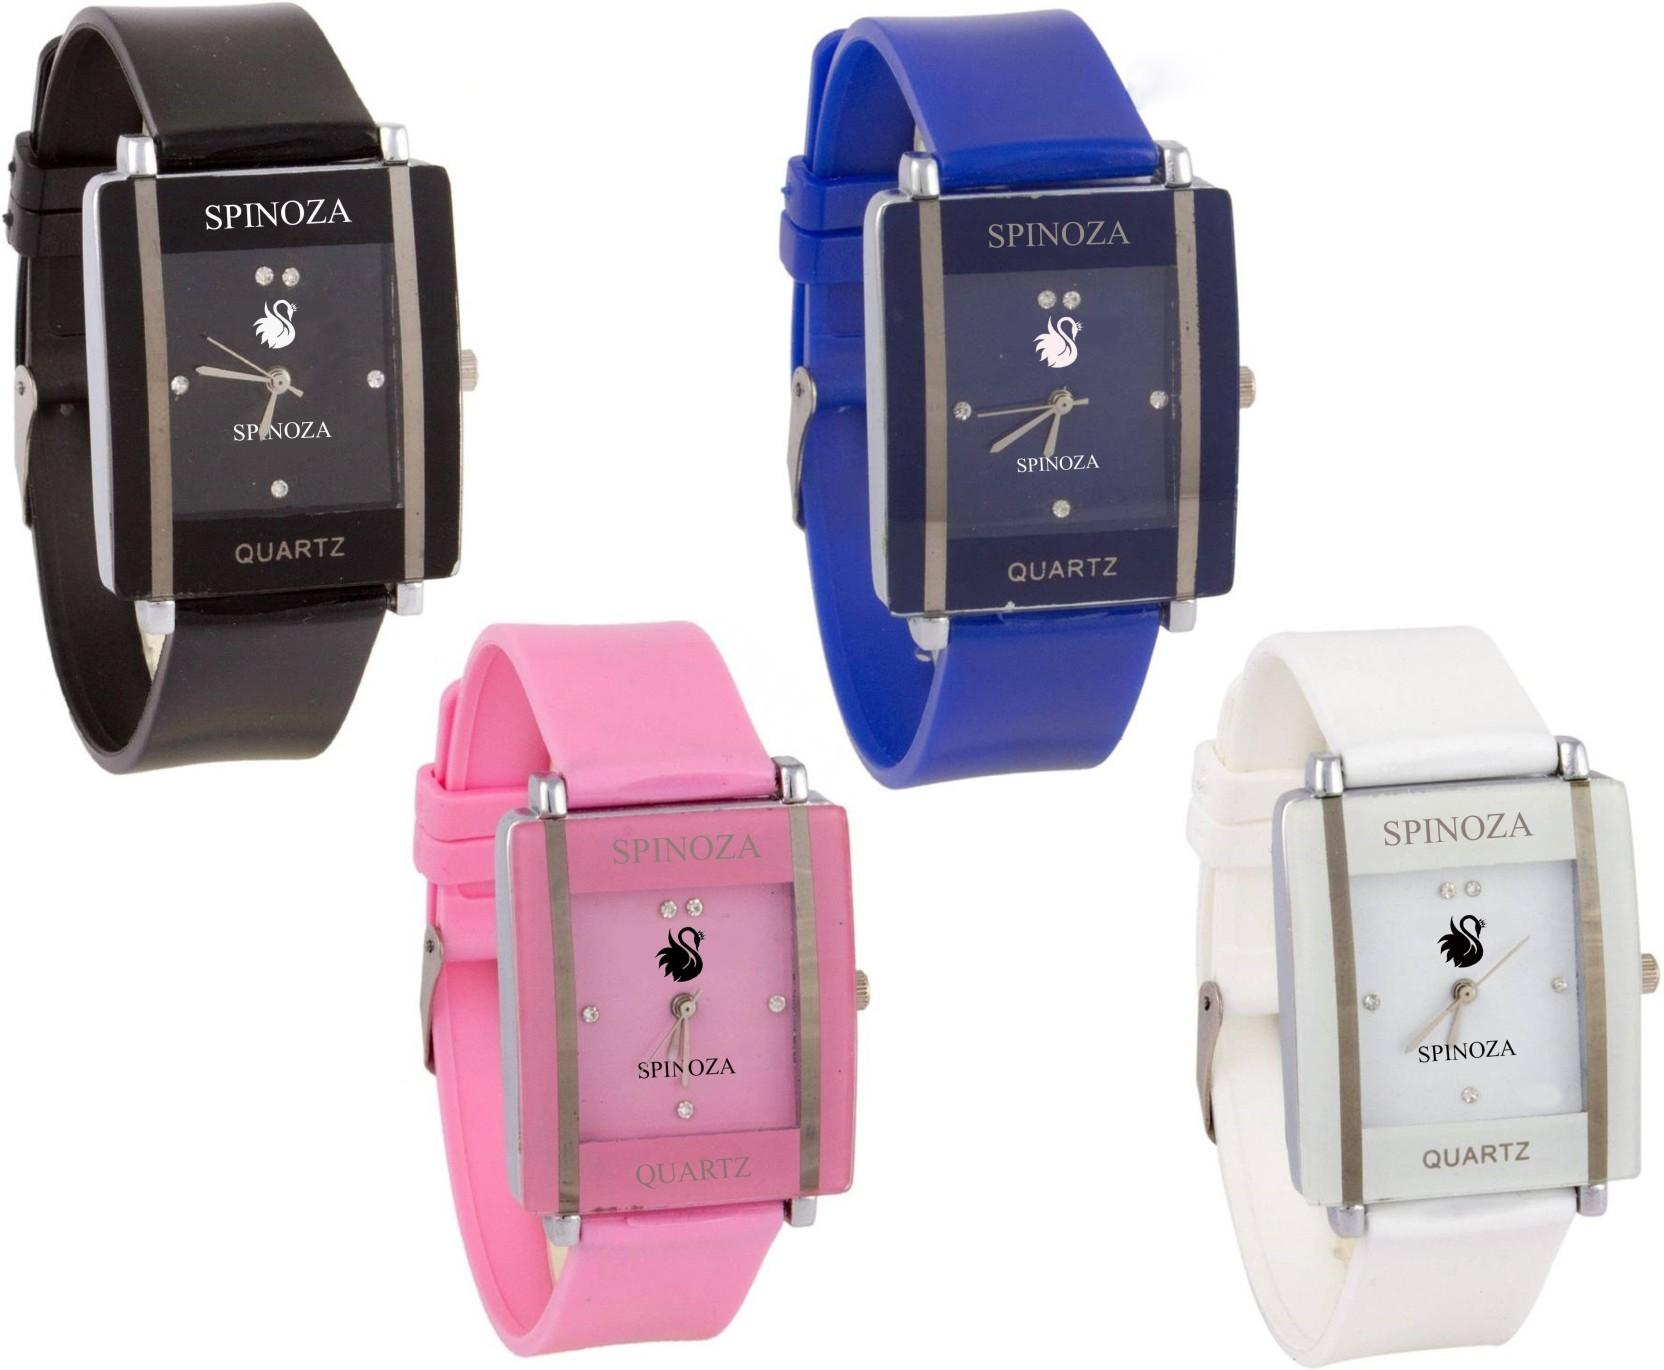 SPINOZA Glory multicolors square shape proffessional and beautiful women combo X70 Watch - For Girls